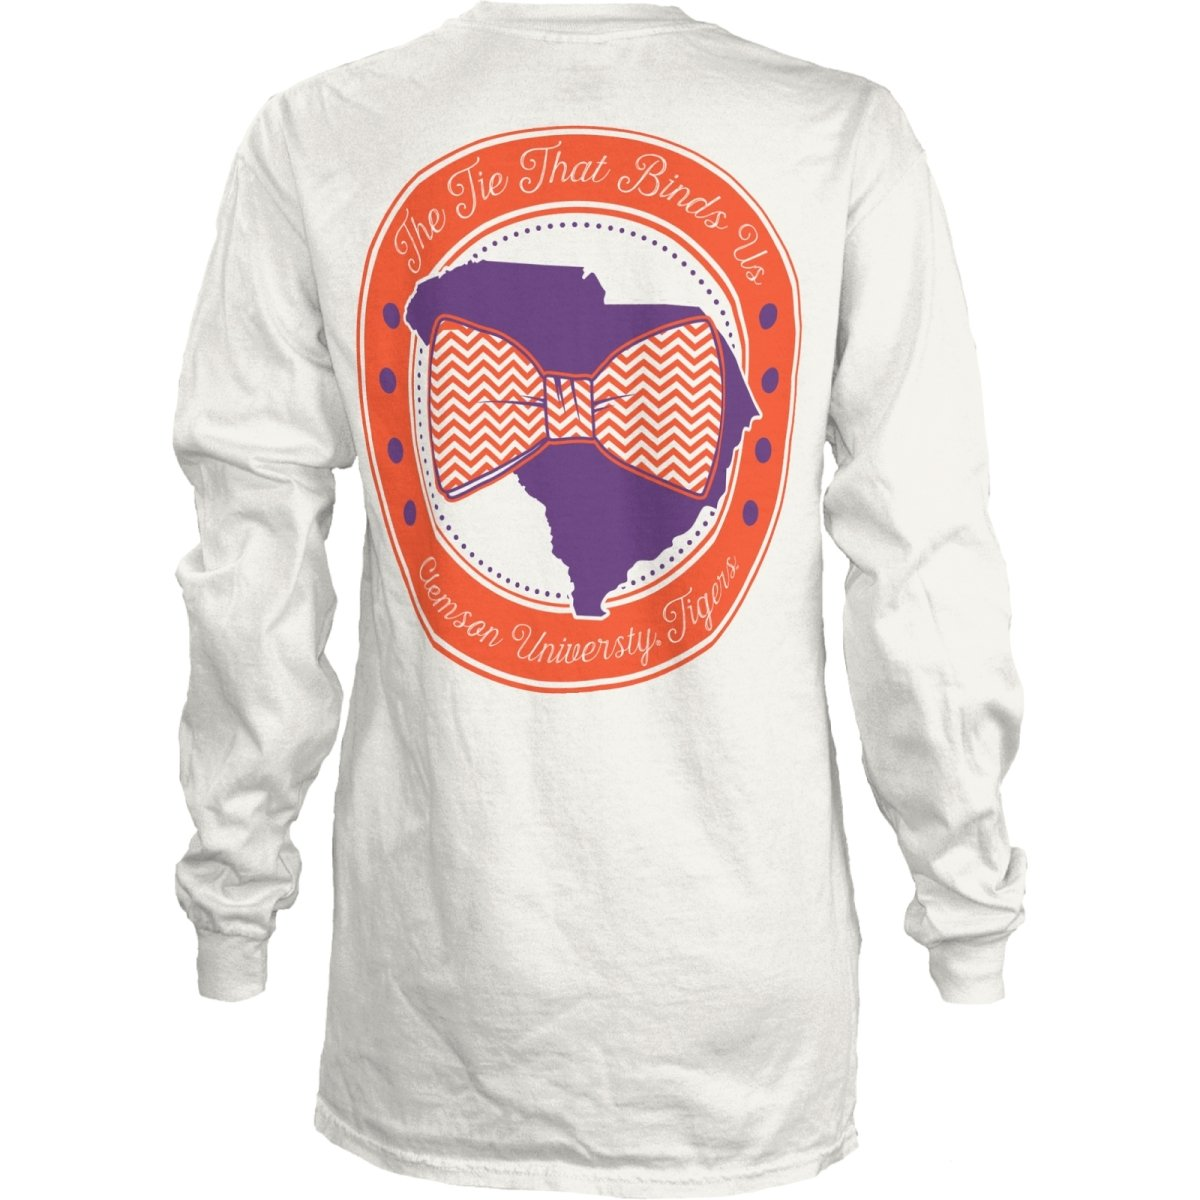 Ladies Long Sleeve Tee Bow Tie the Tie That Binds Us - Mr. Knickerbocker